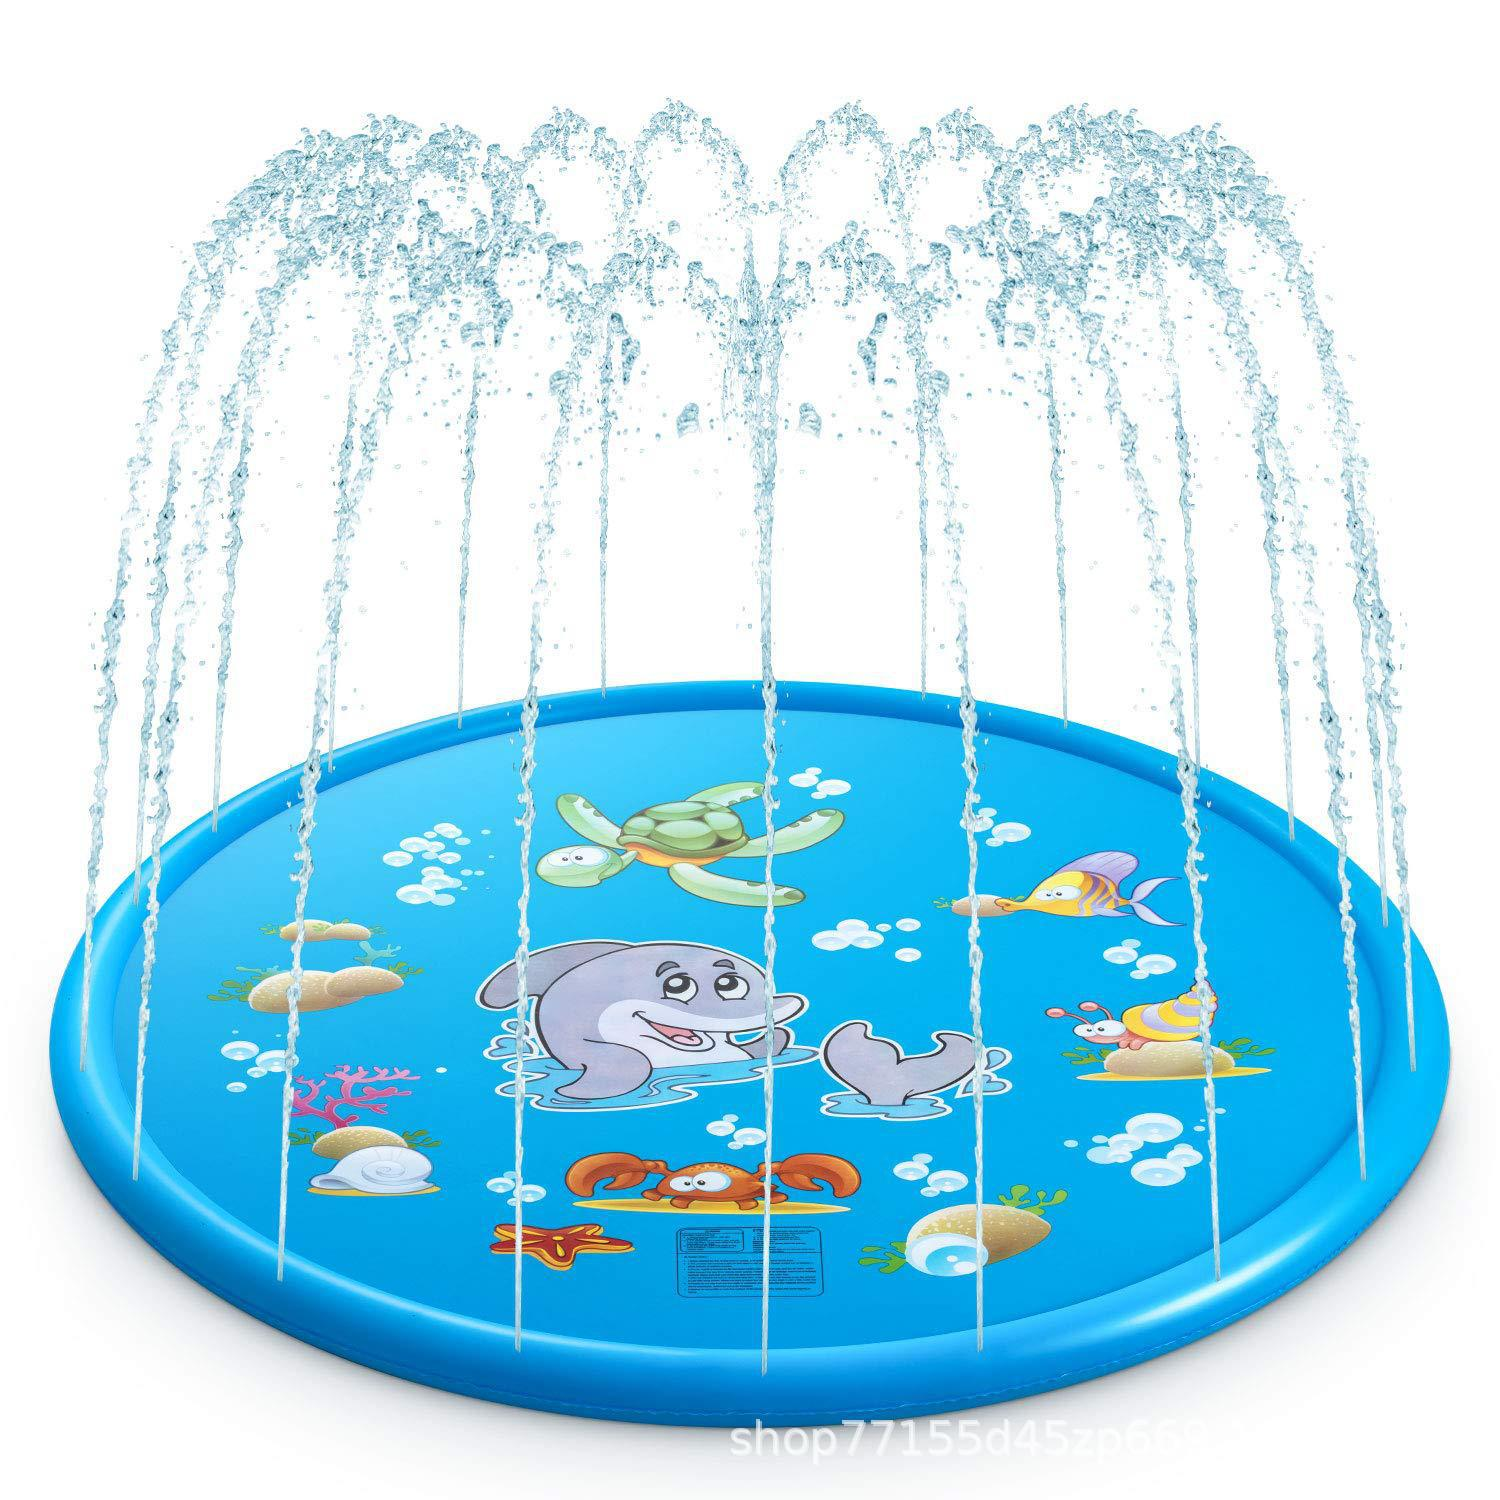 Summer Inflatable Water Spray Pad Thickened Pvc Children Outdoor Splash Pads Swimming Pool Toy Kid Gifts 100 130 150 170 180cm